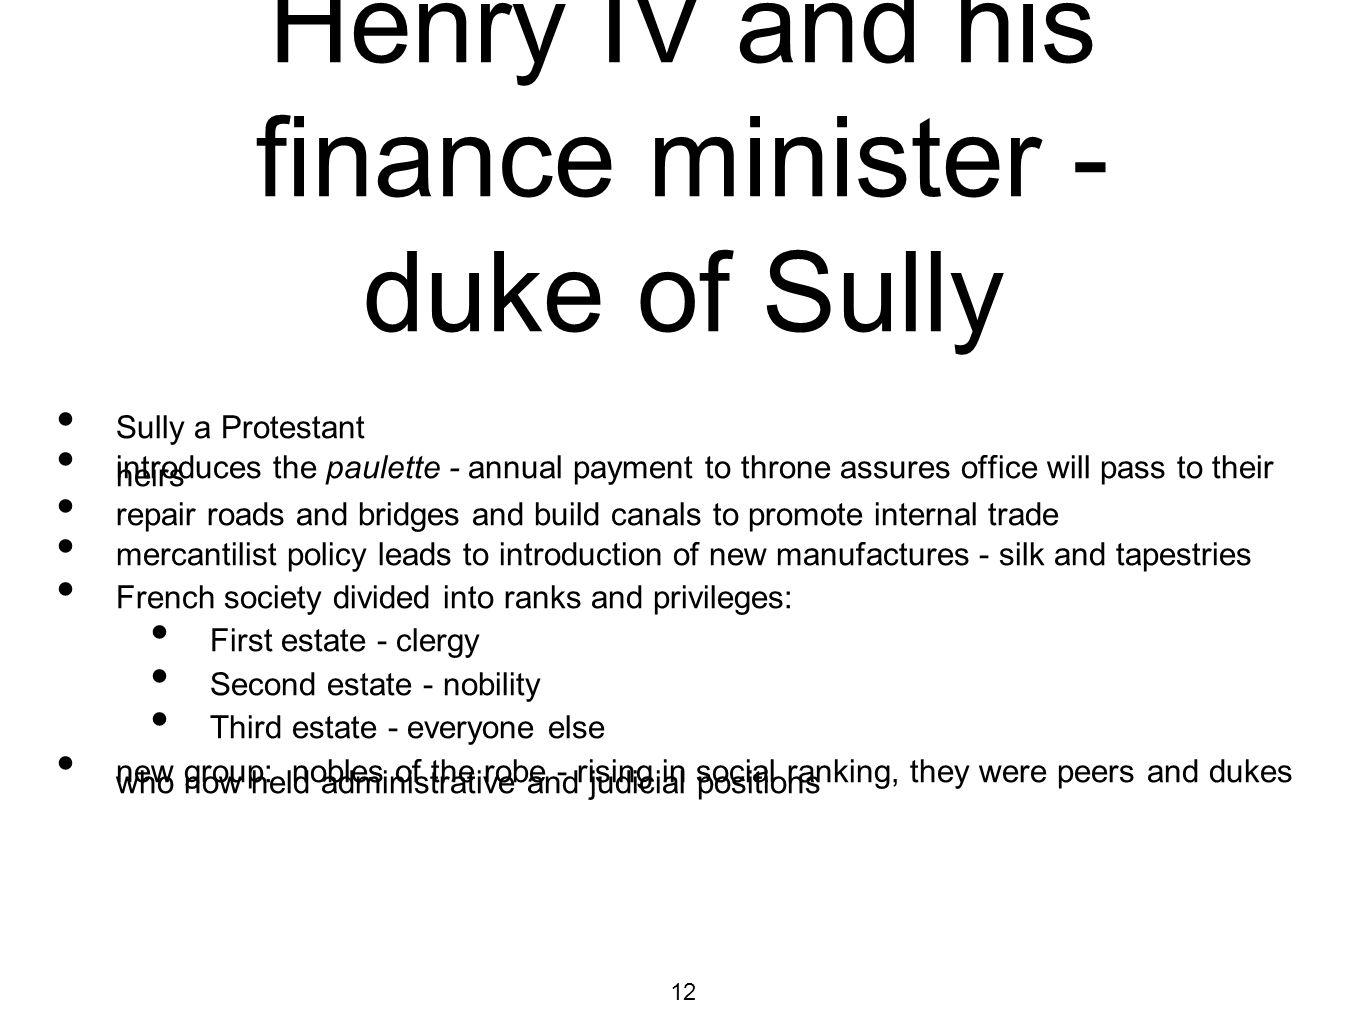 Henry IV and his finance minister - duke of Sully